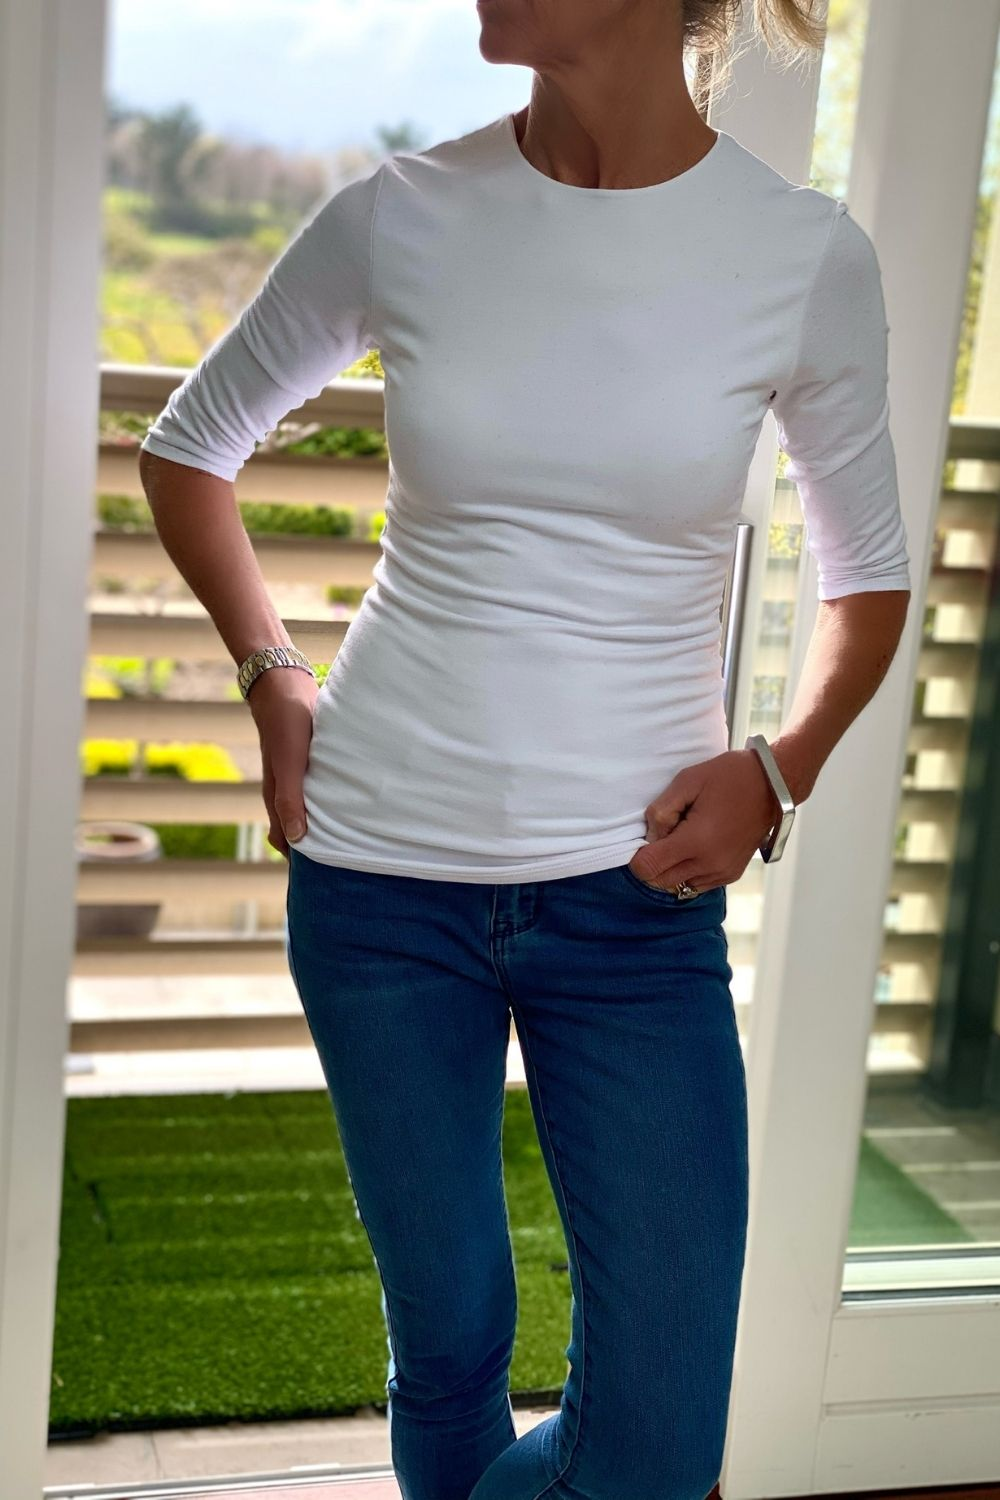 Katia 3/4 Length Sleeve Tshirt in White